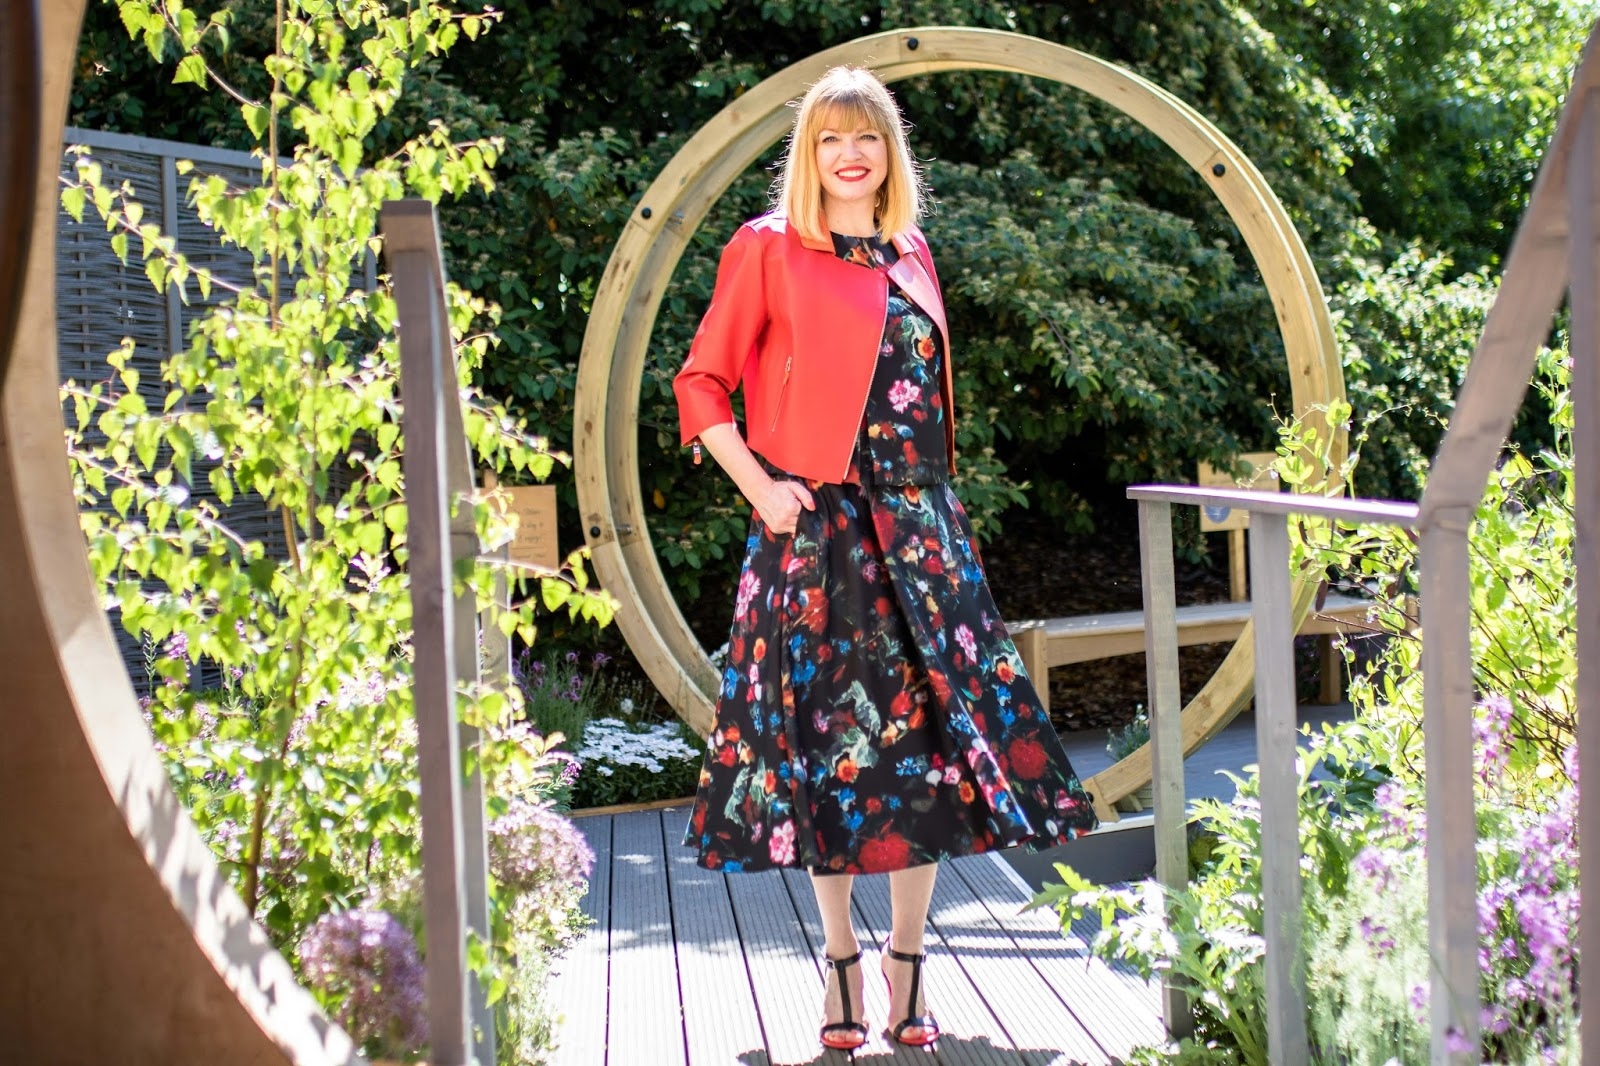 What-Lizzy-Loves-Madeleine-black-floral-peplum-top-matching-floral-midi-skirt-tomato-red-leather high-heeled-sandals-red-leather-biker-jacket-what-to-wear-Chelsea-Flower-Show